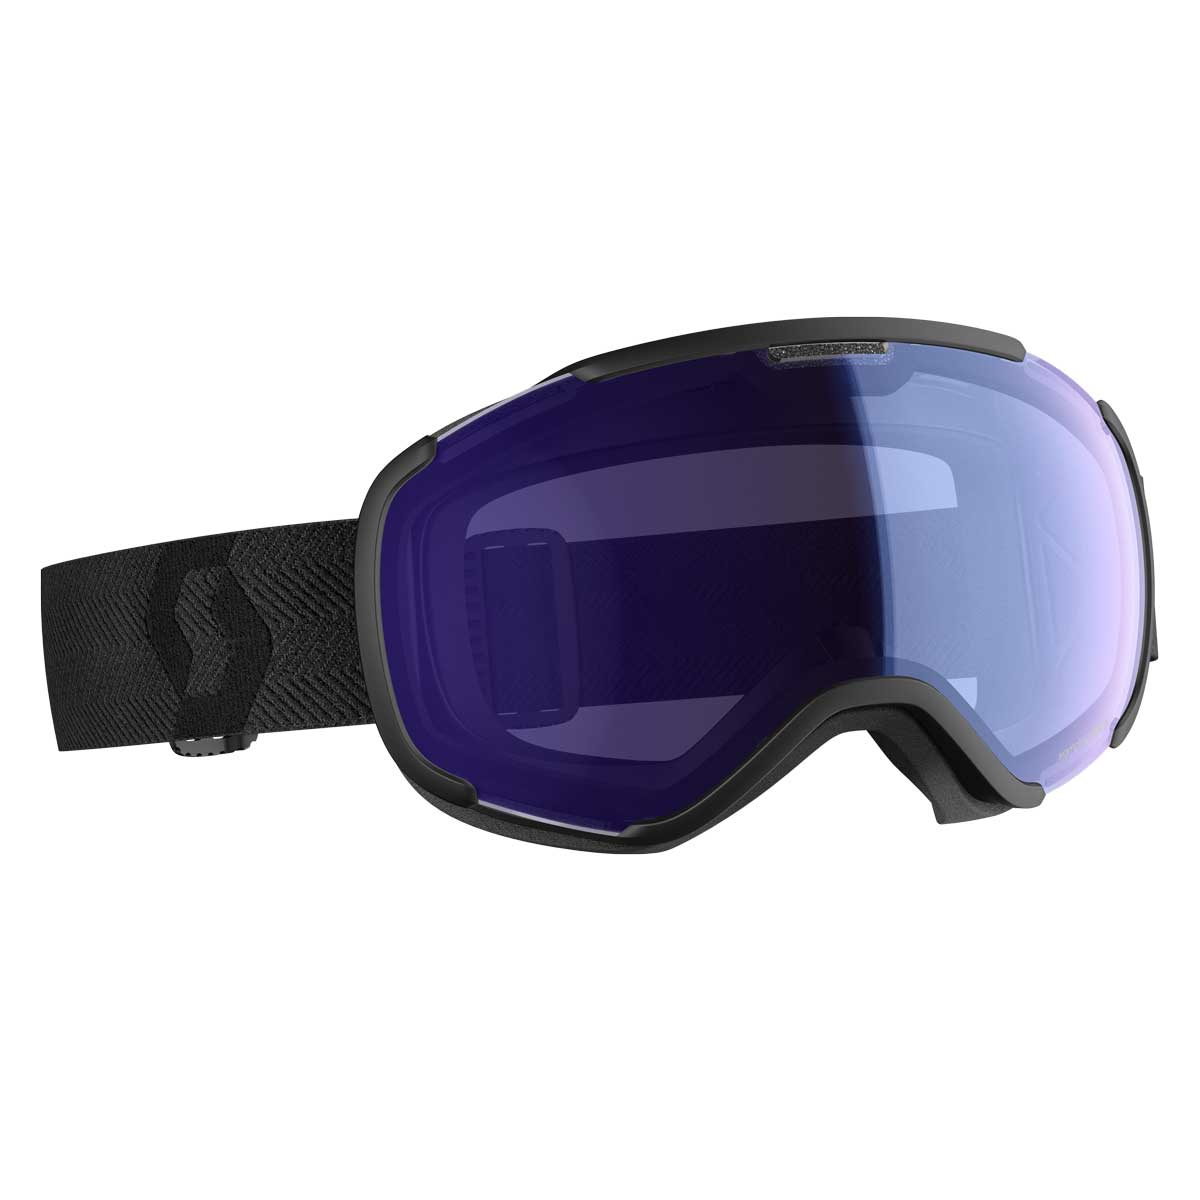 scott faze 2 goggle in Black with Illuminator Blue Chrome